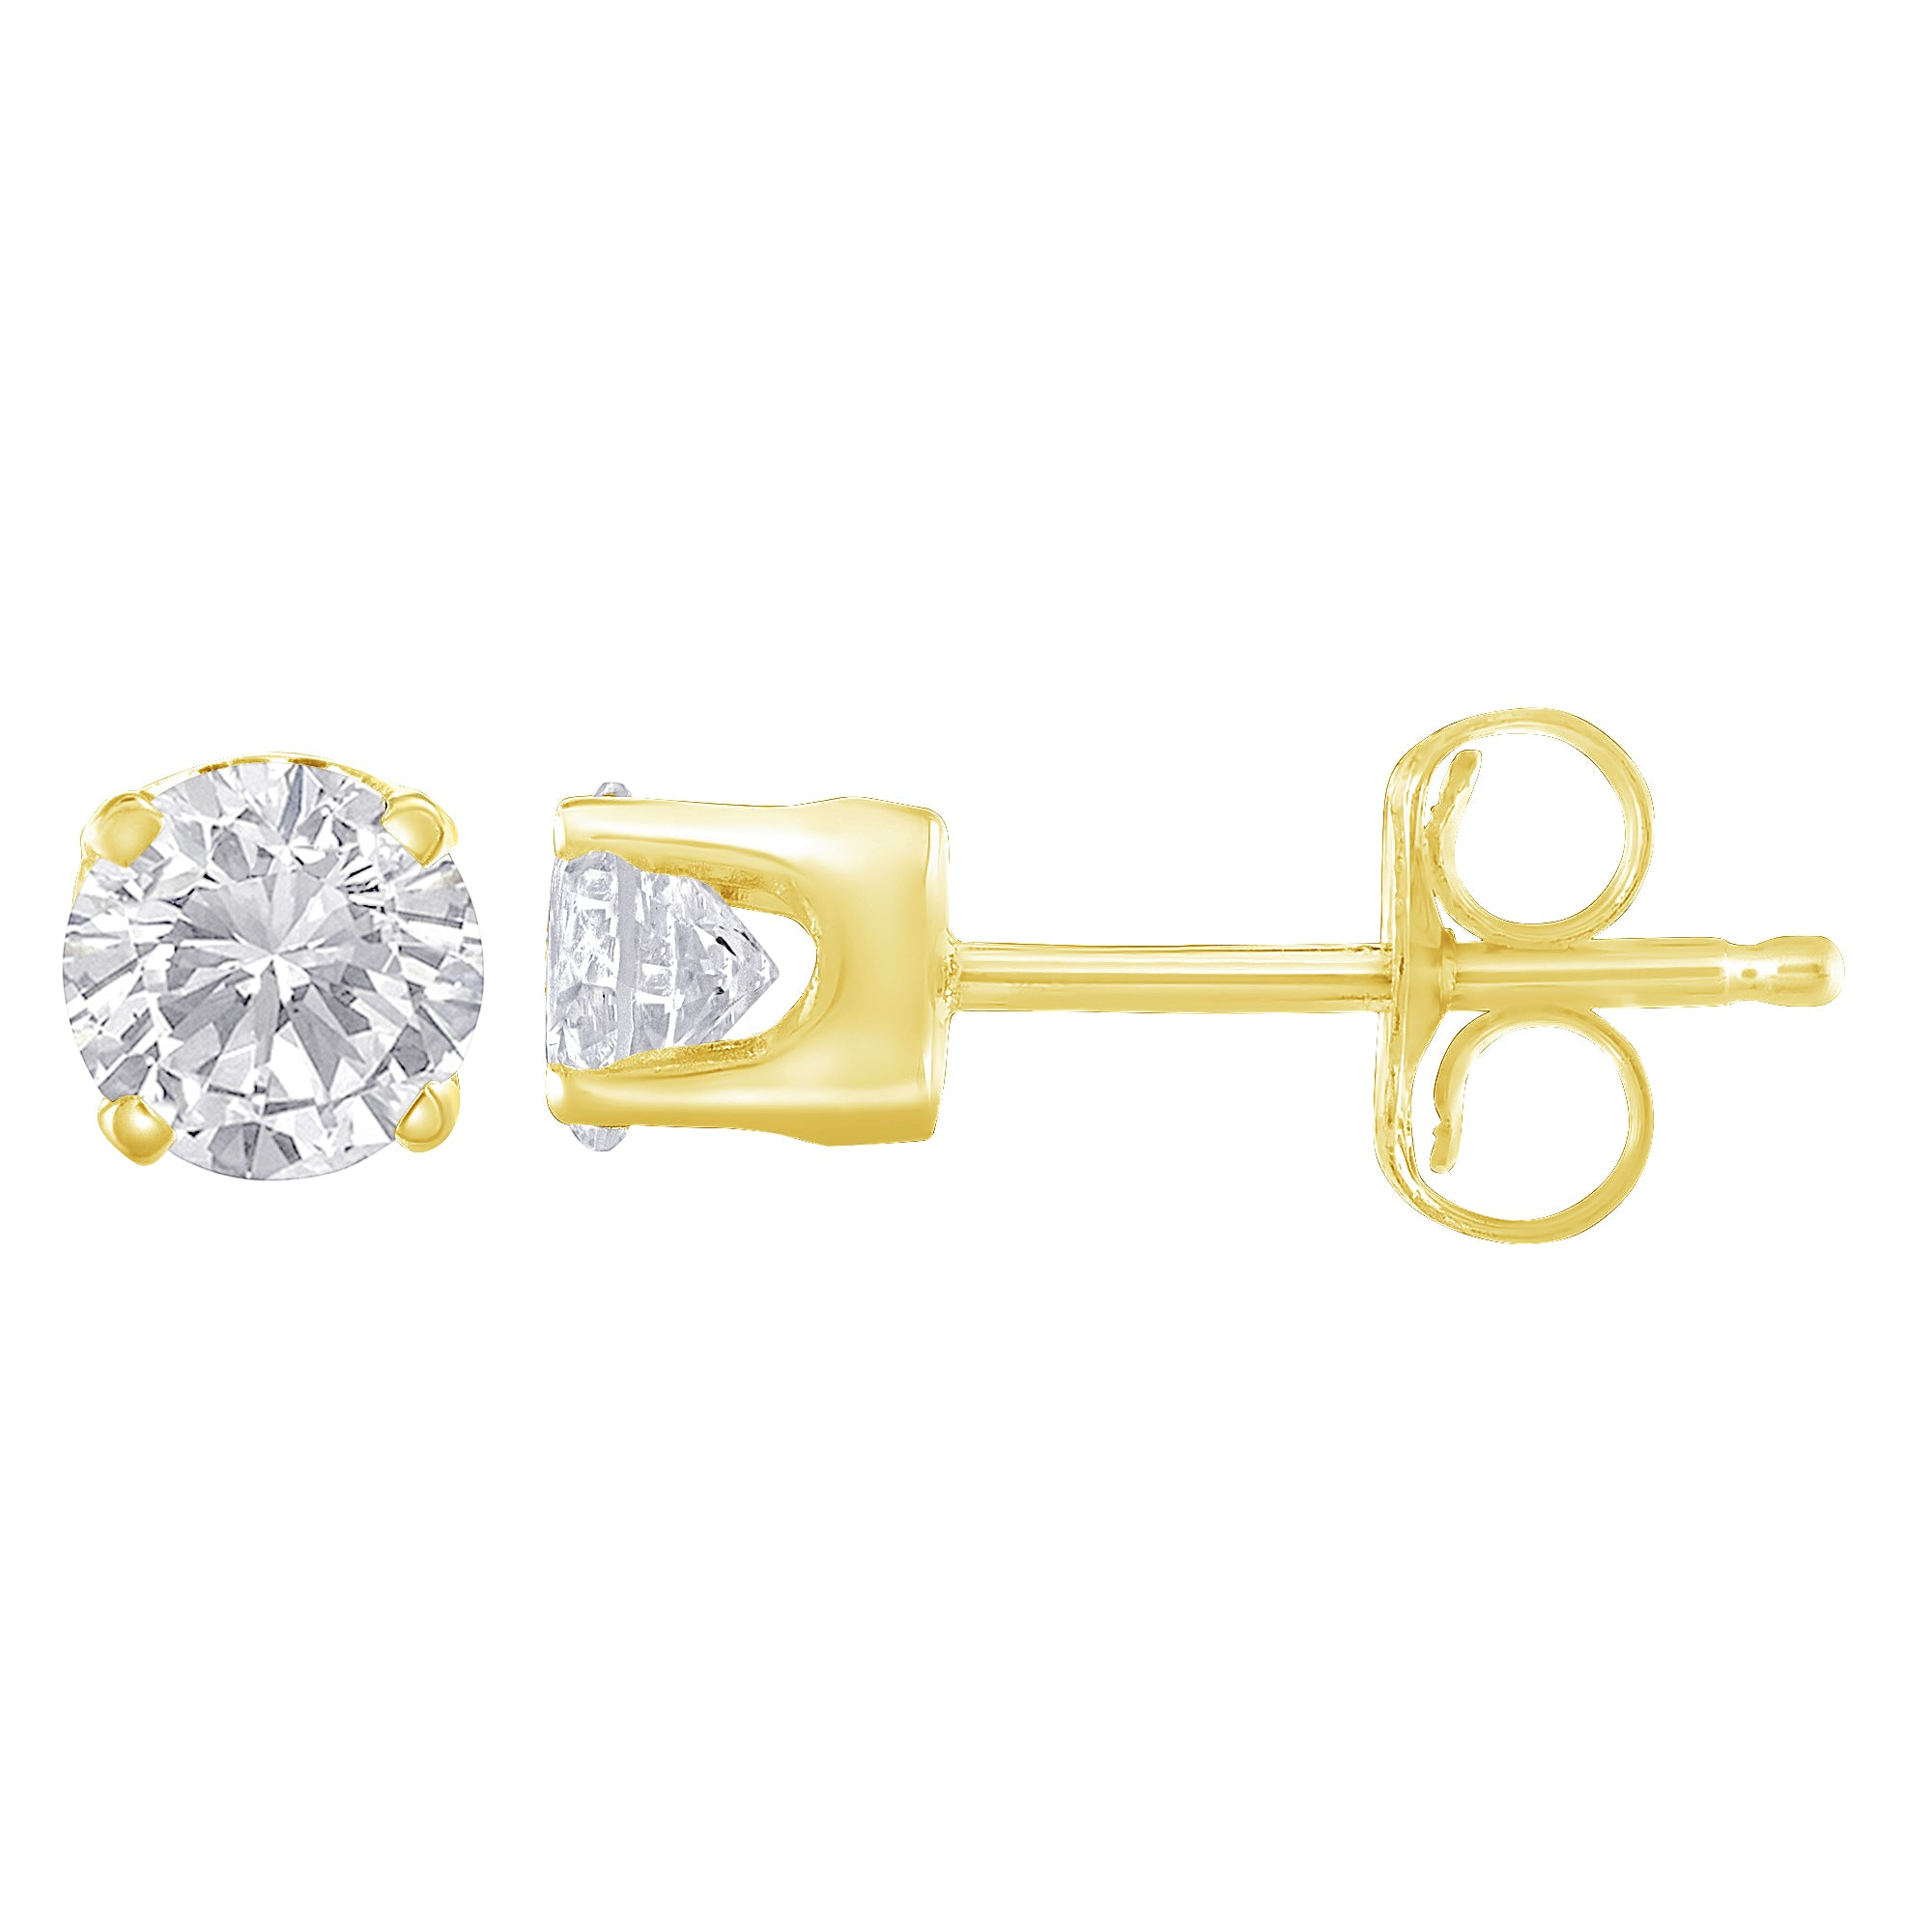 10k Yellow Gold 1/3ct. TDW Solitaire Diamond Stud